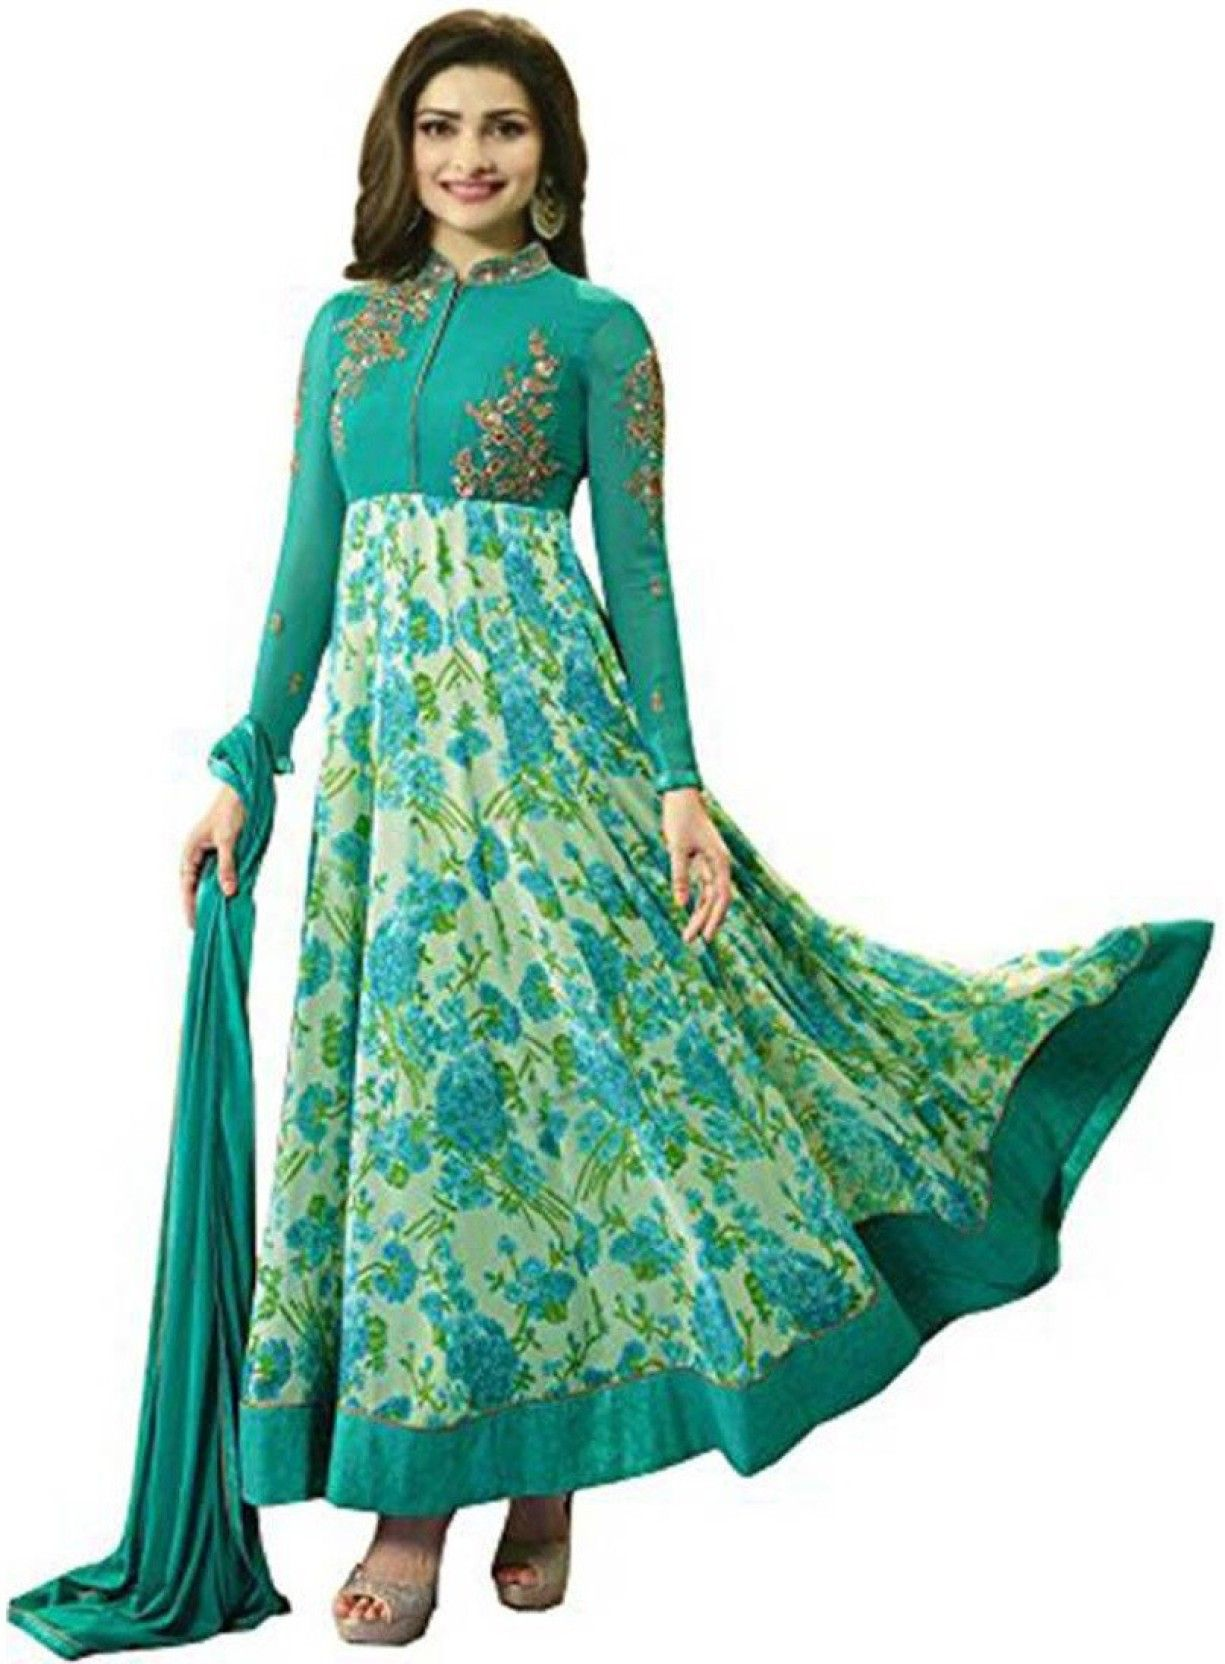 bf8c795c6a374a Active Anarkali Price in India - Buy Active Anarkali online at Flipkart.com